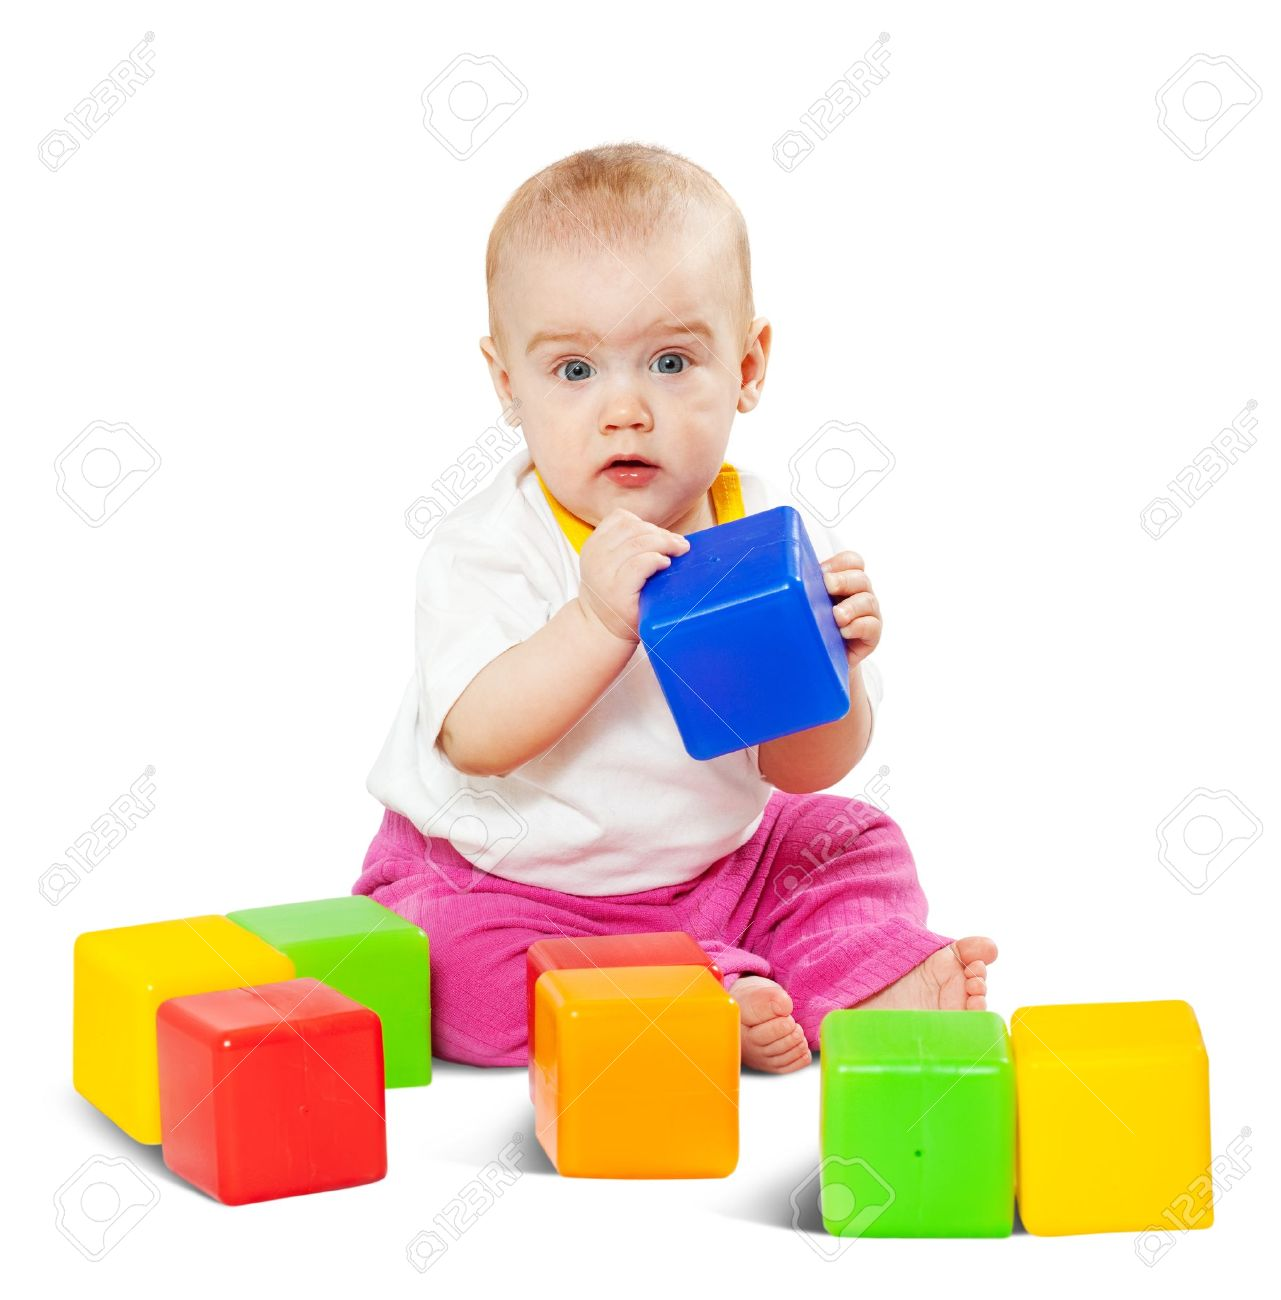 Happy baby plays  with toy blocks over white background Stock Photo - 9248865